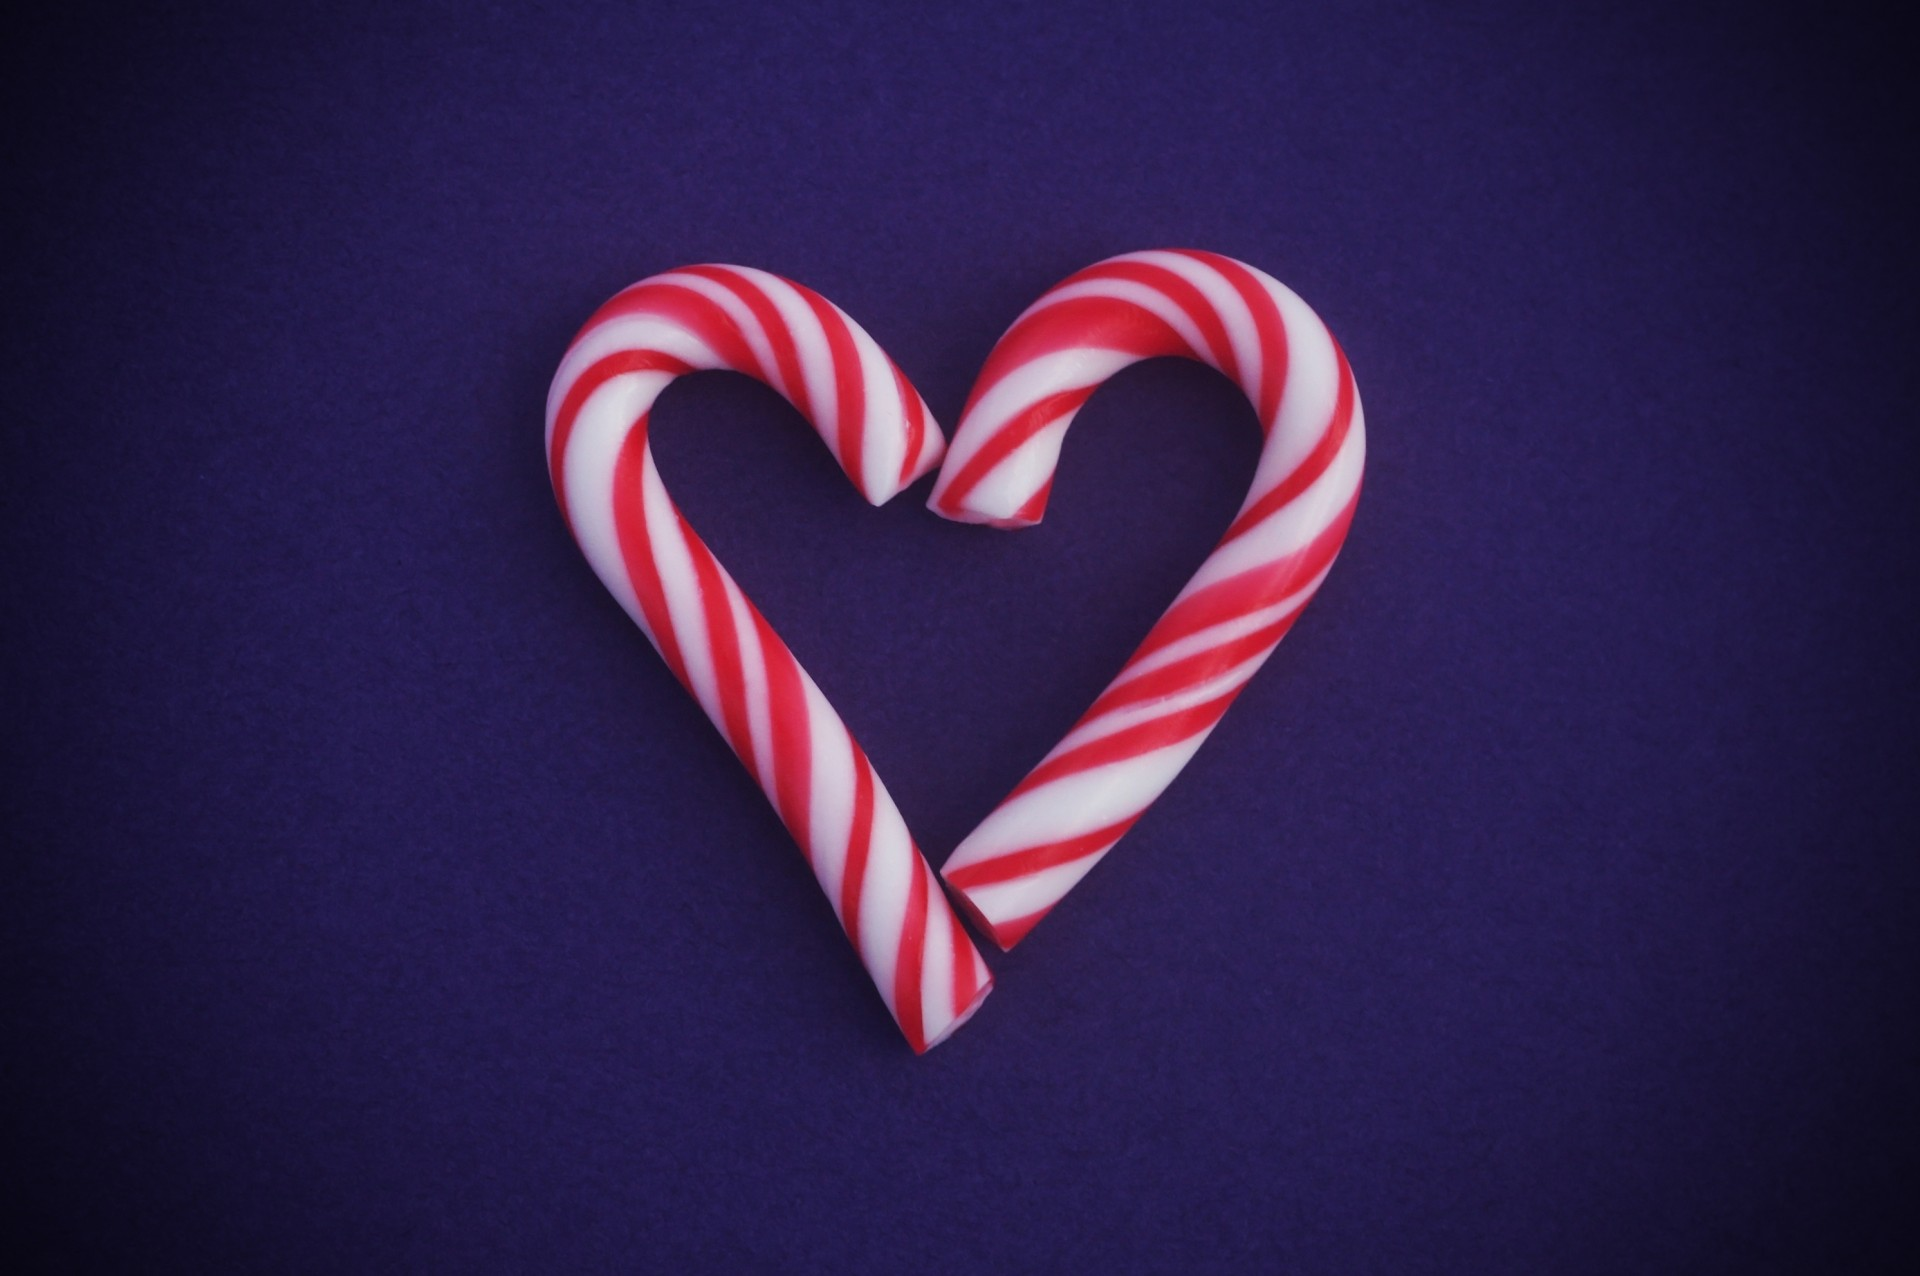 Christmas Santa Hd Wallpapers Heart Candy Canes Free Stock Photo Public Domain Pictures